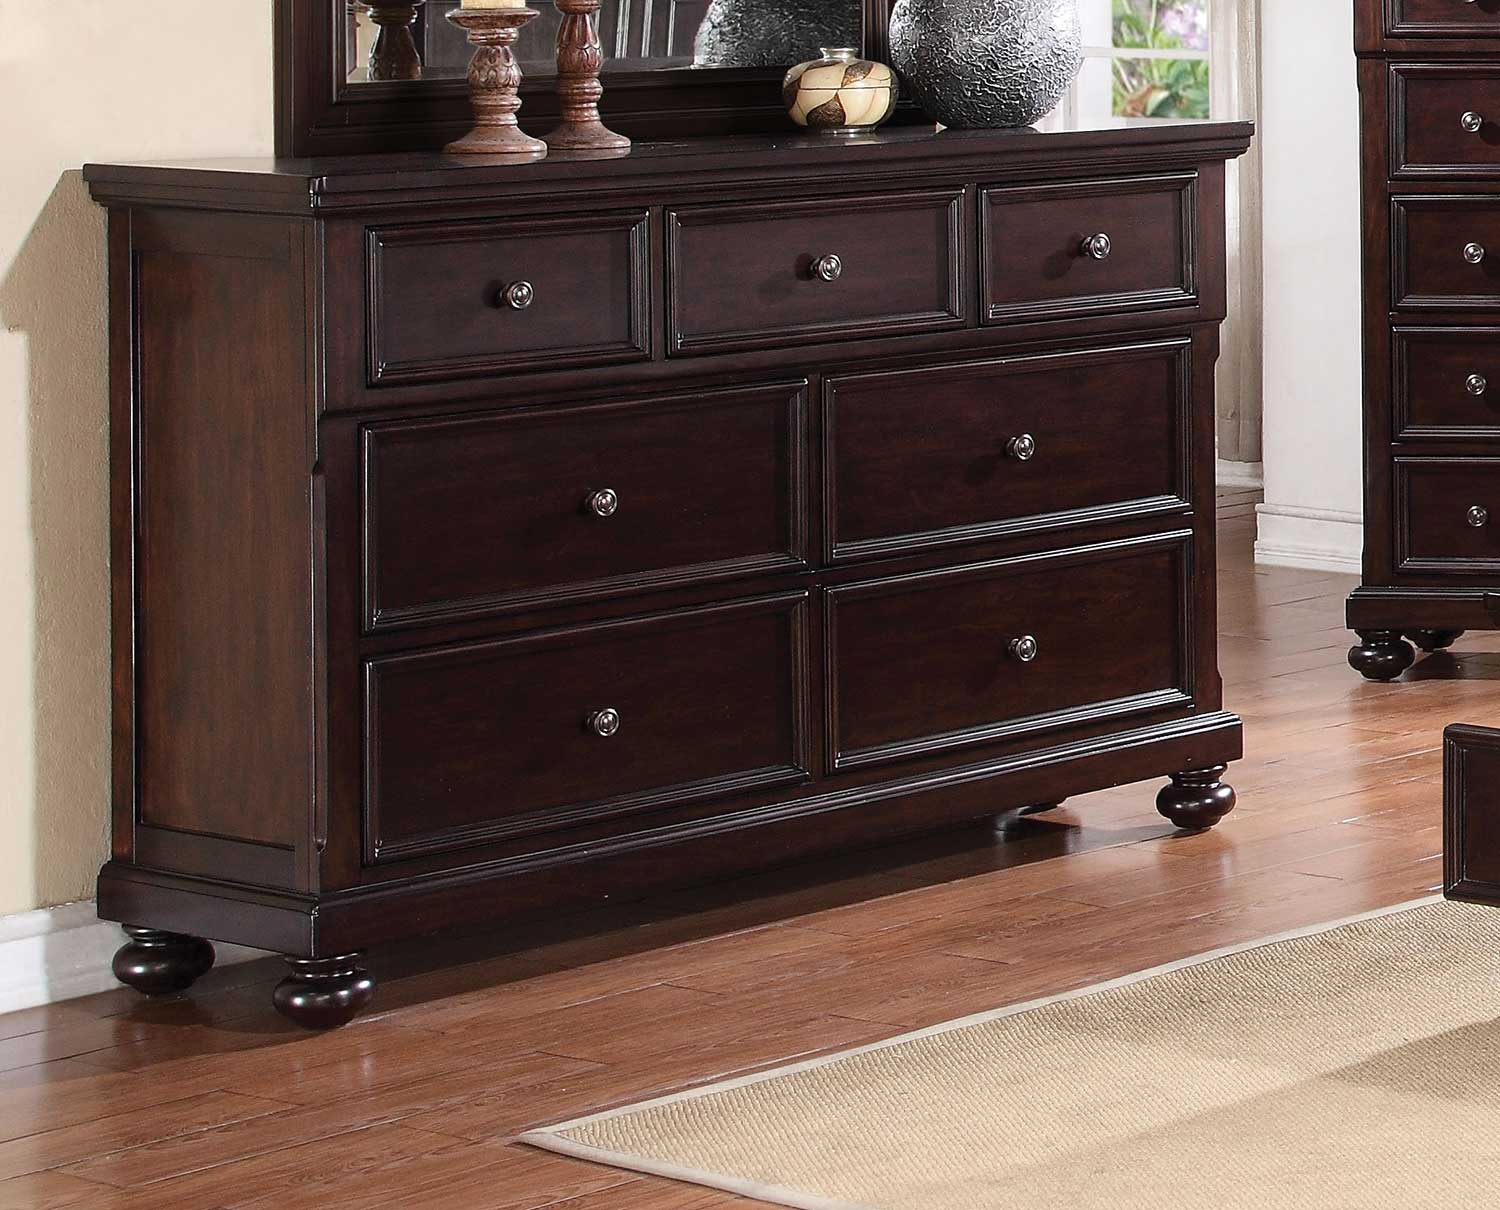 Acme Grayson Dresser - Dark Walnut